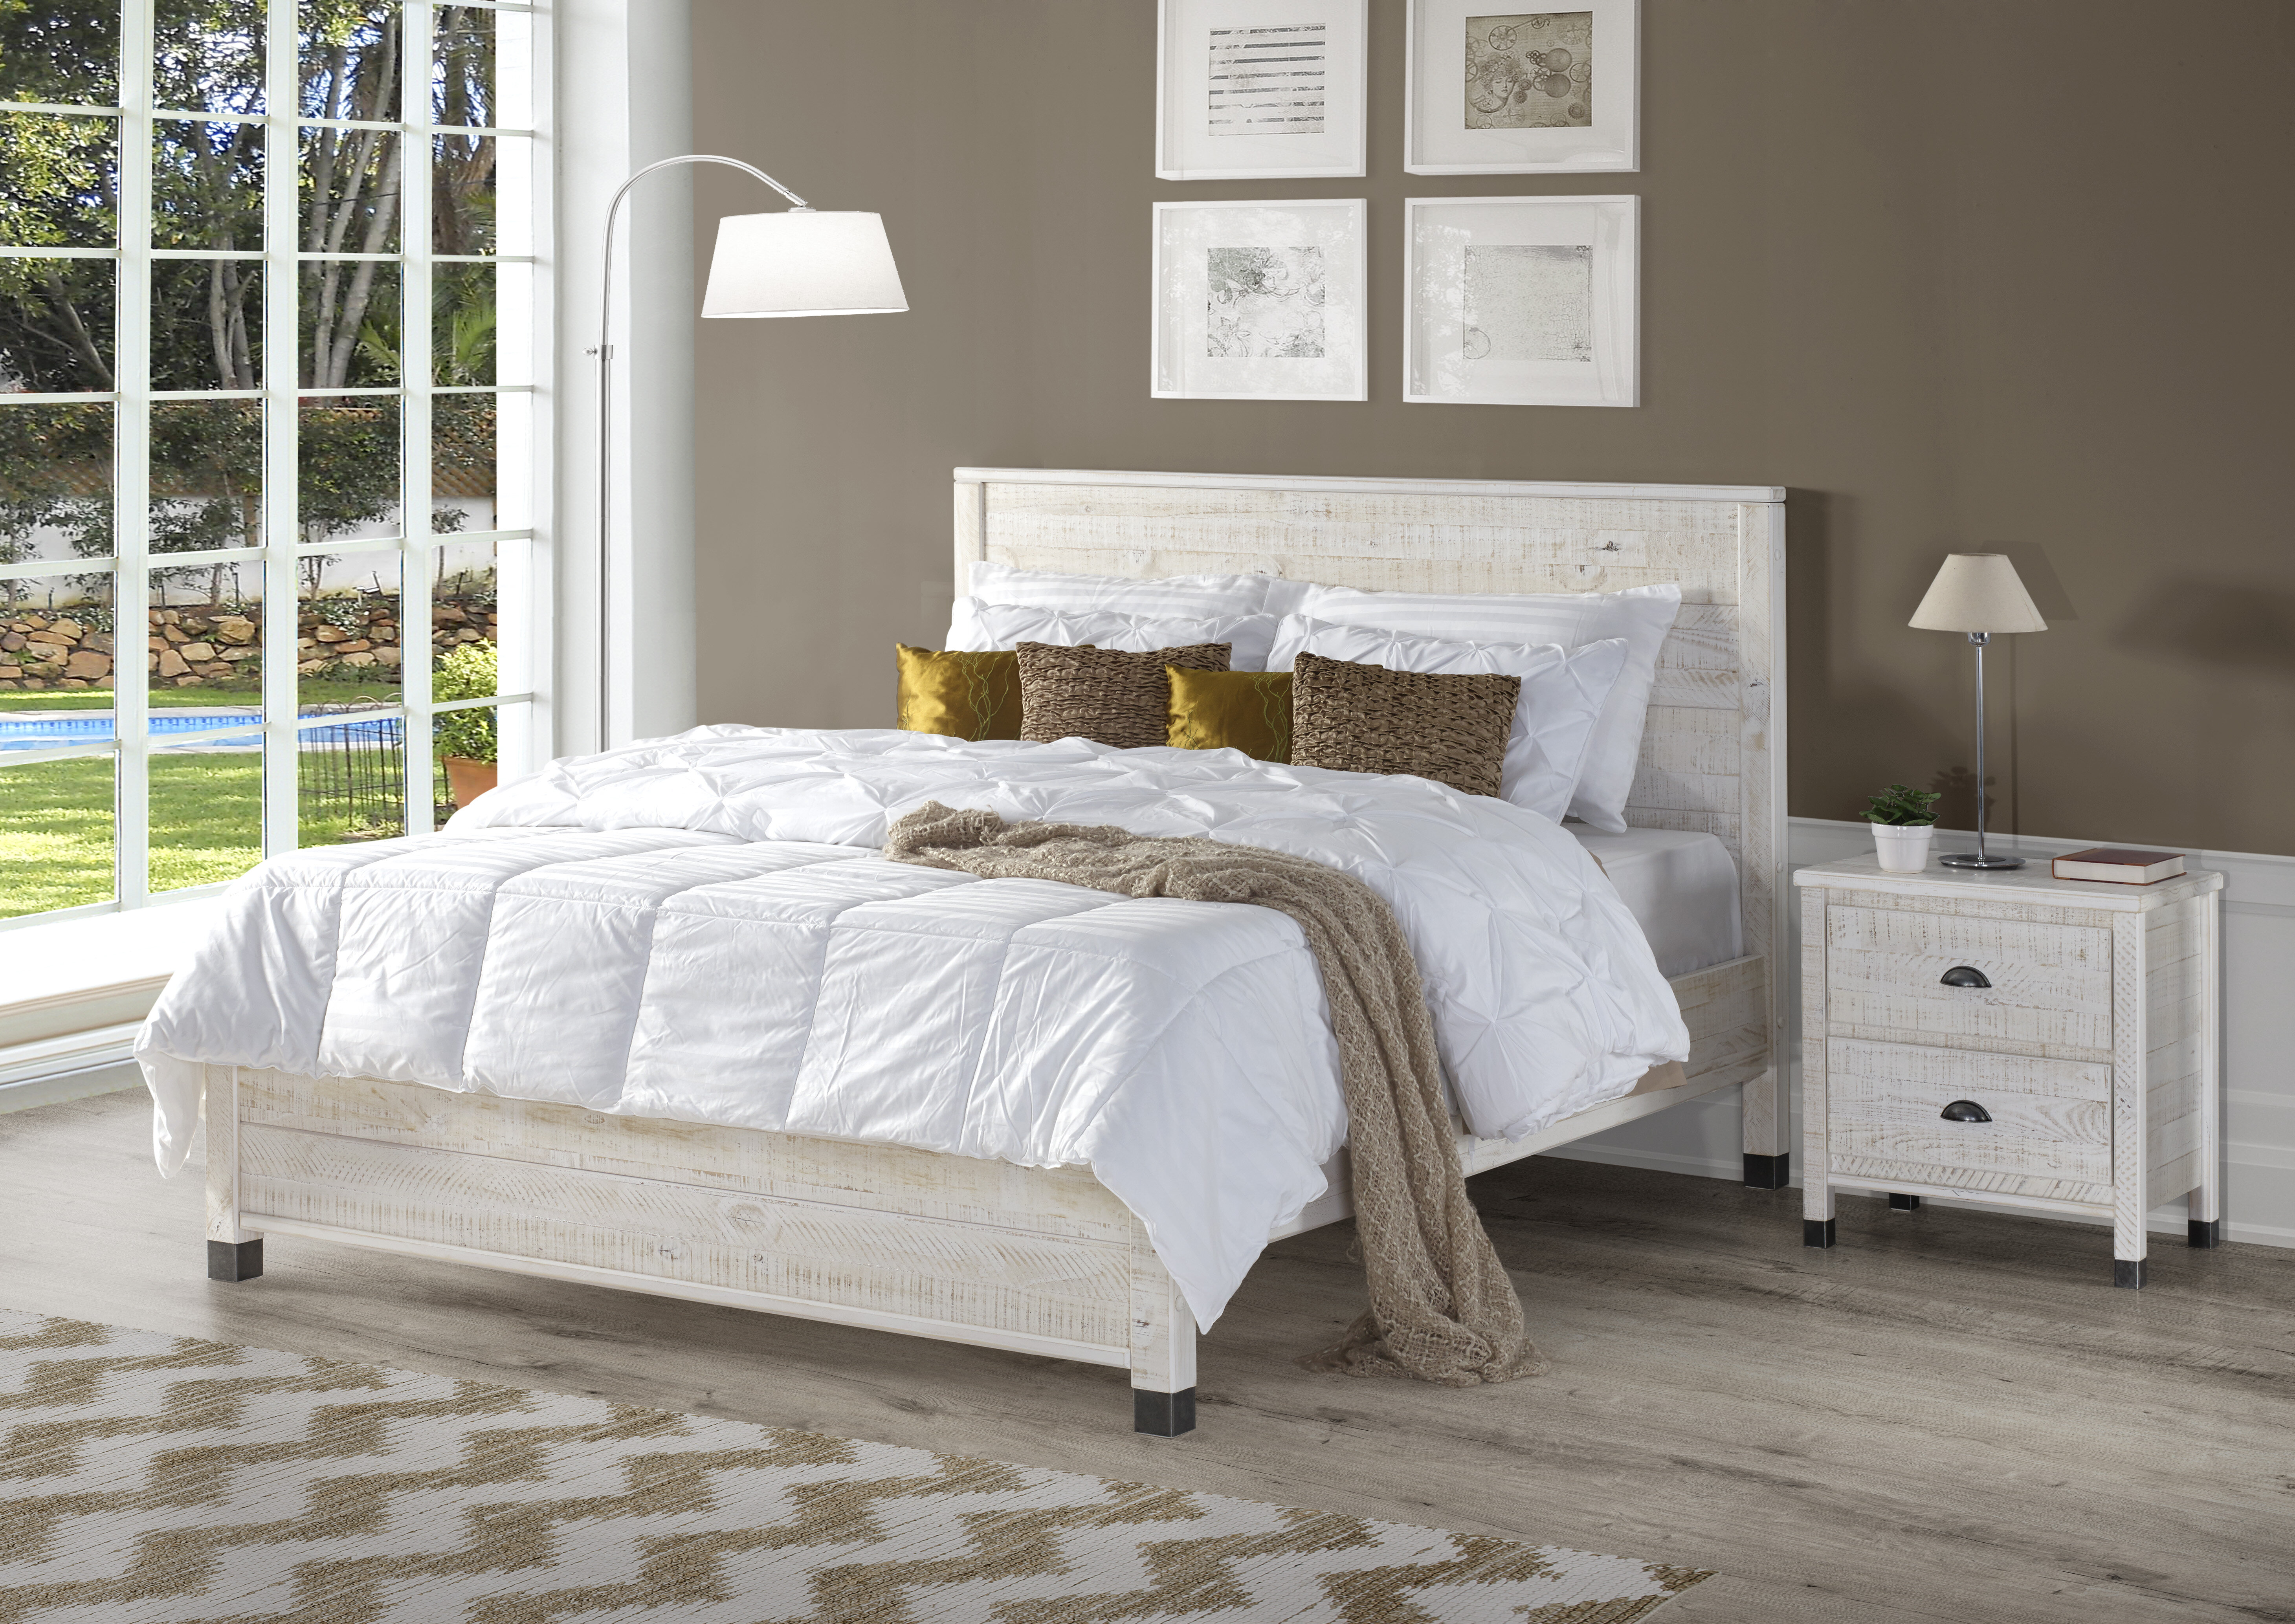 step of p platform south chocolate collection picture bed furniture shore one queen